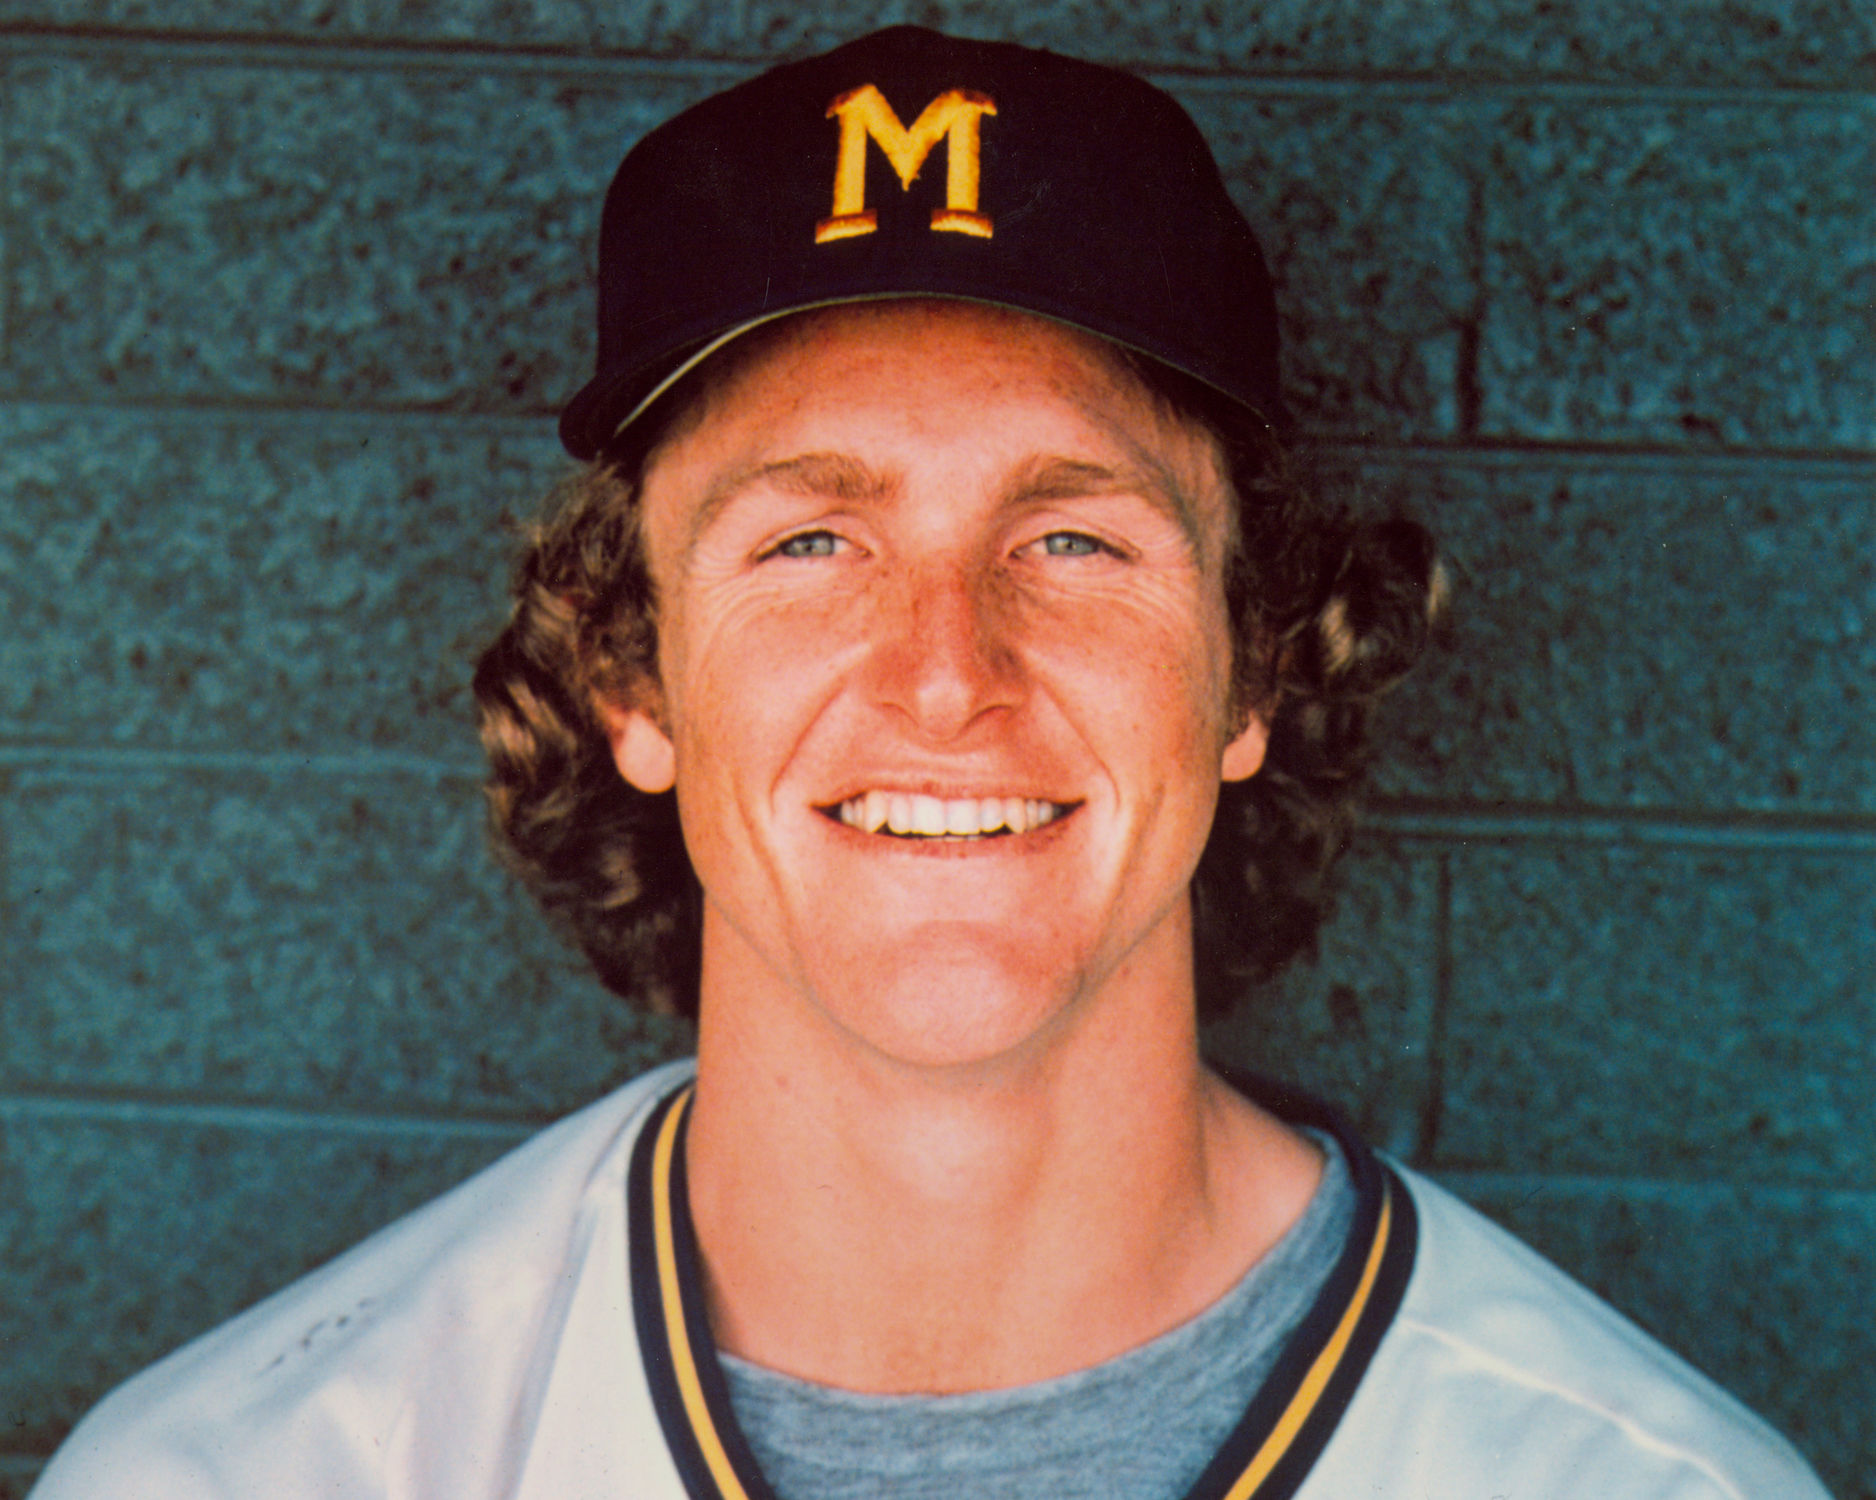 hall of famers who played american legion baseball baseball hall robin yount signed the milwaukee brewers the day after his final american legion game in woodland hills calif bl 3259 98 national baseball hall of